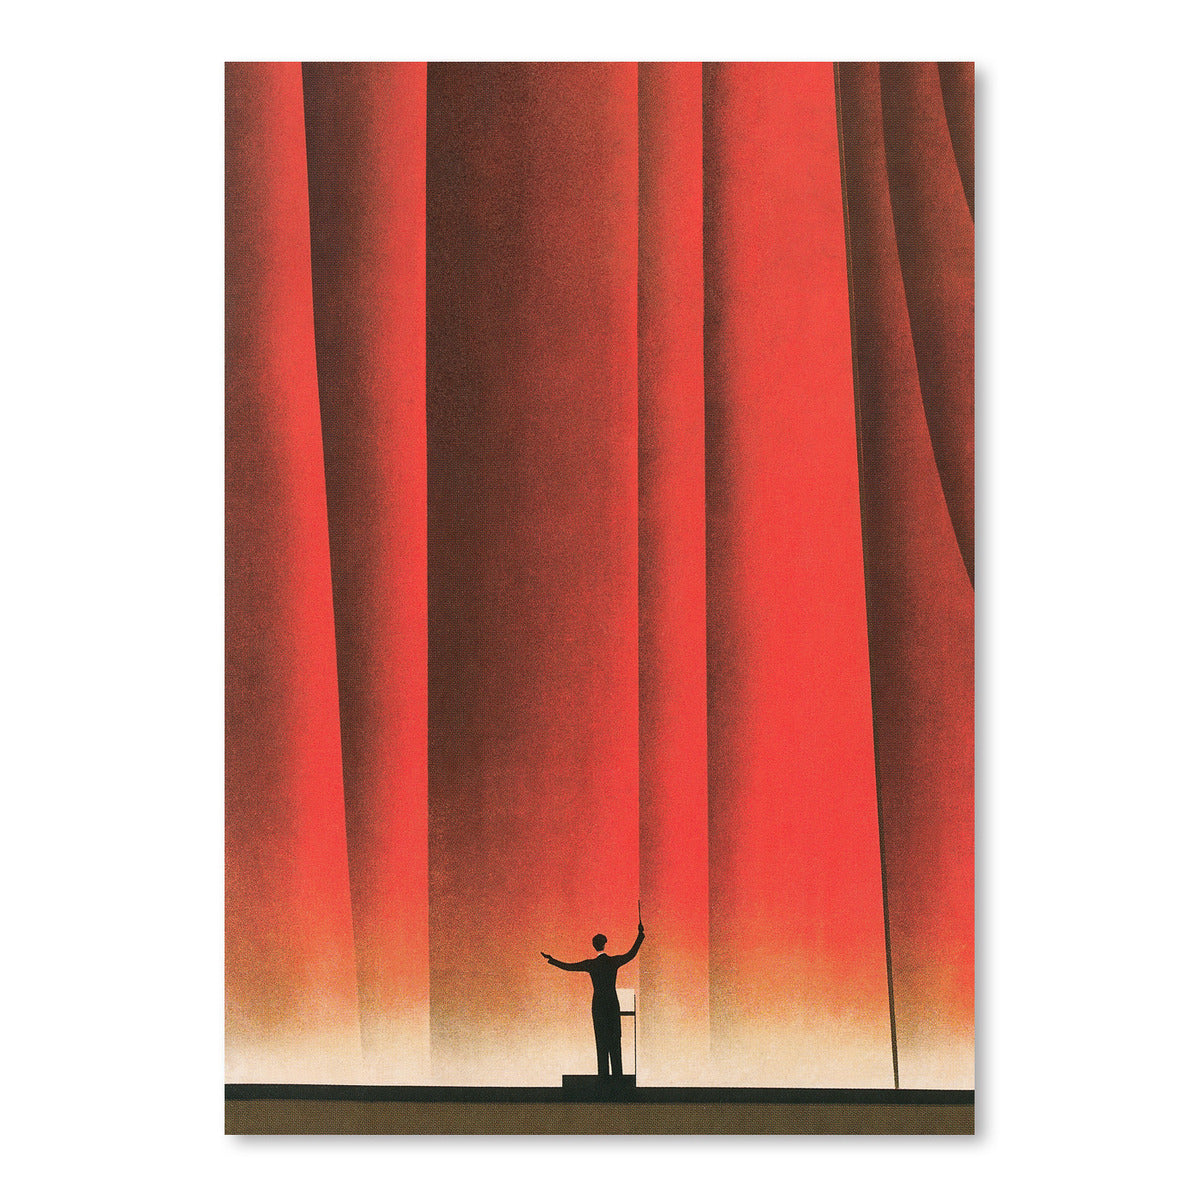 Conductor In Front Of Curtain by Found Image Press Art Print - Art Print - Americanflat